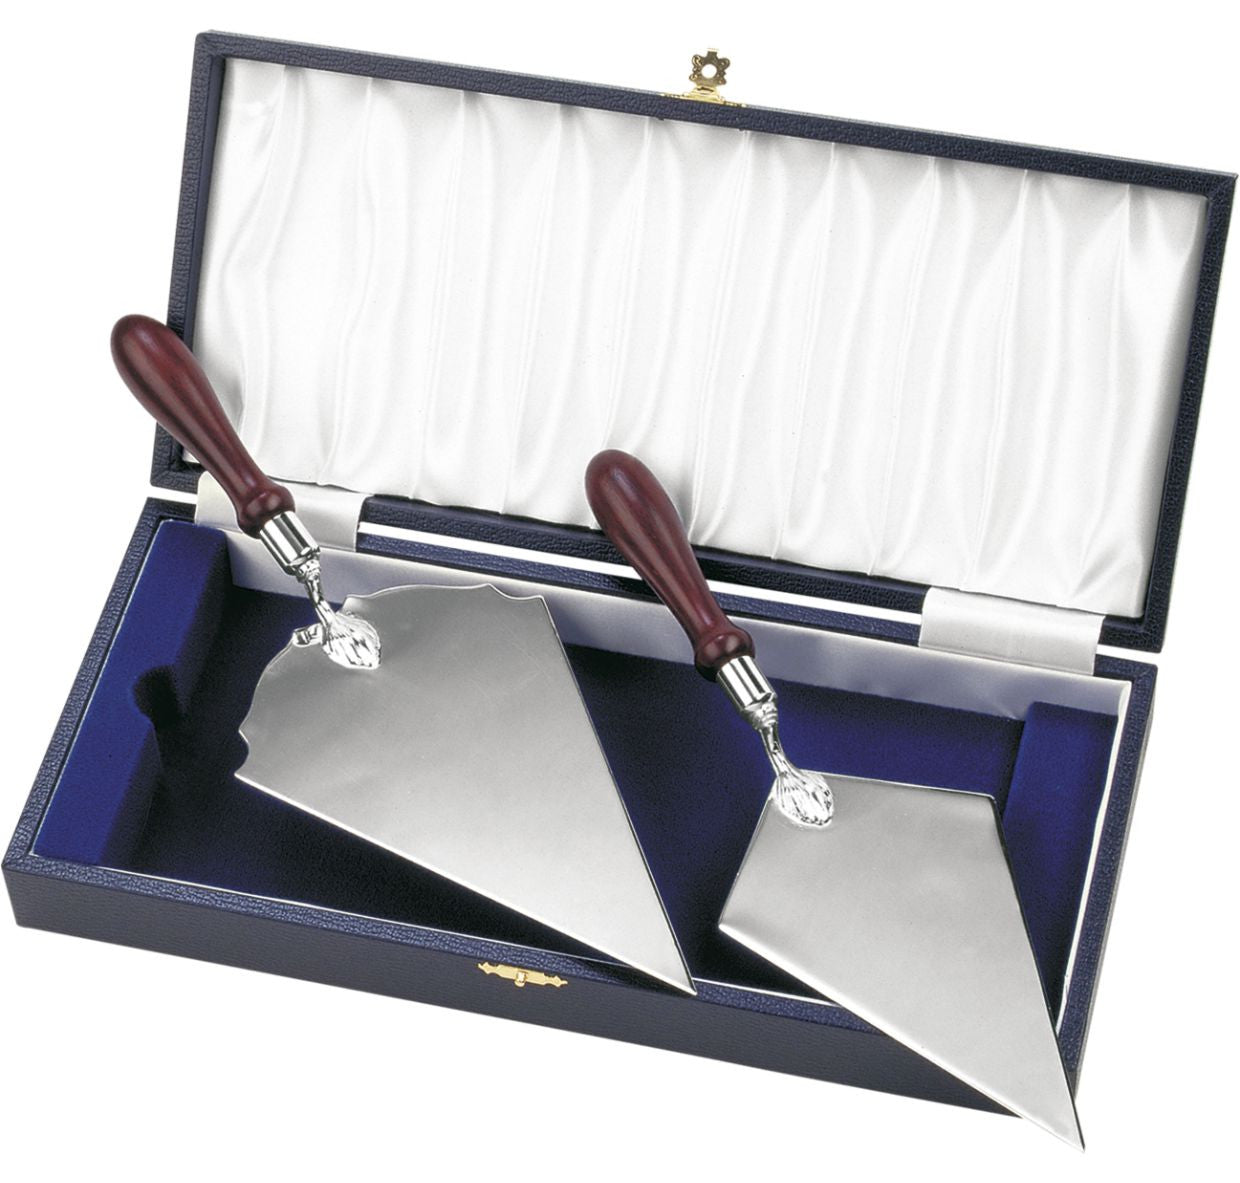 Silver Plated Trowels - Bracknell Engraving & Trophy Services